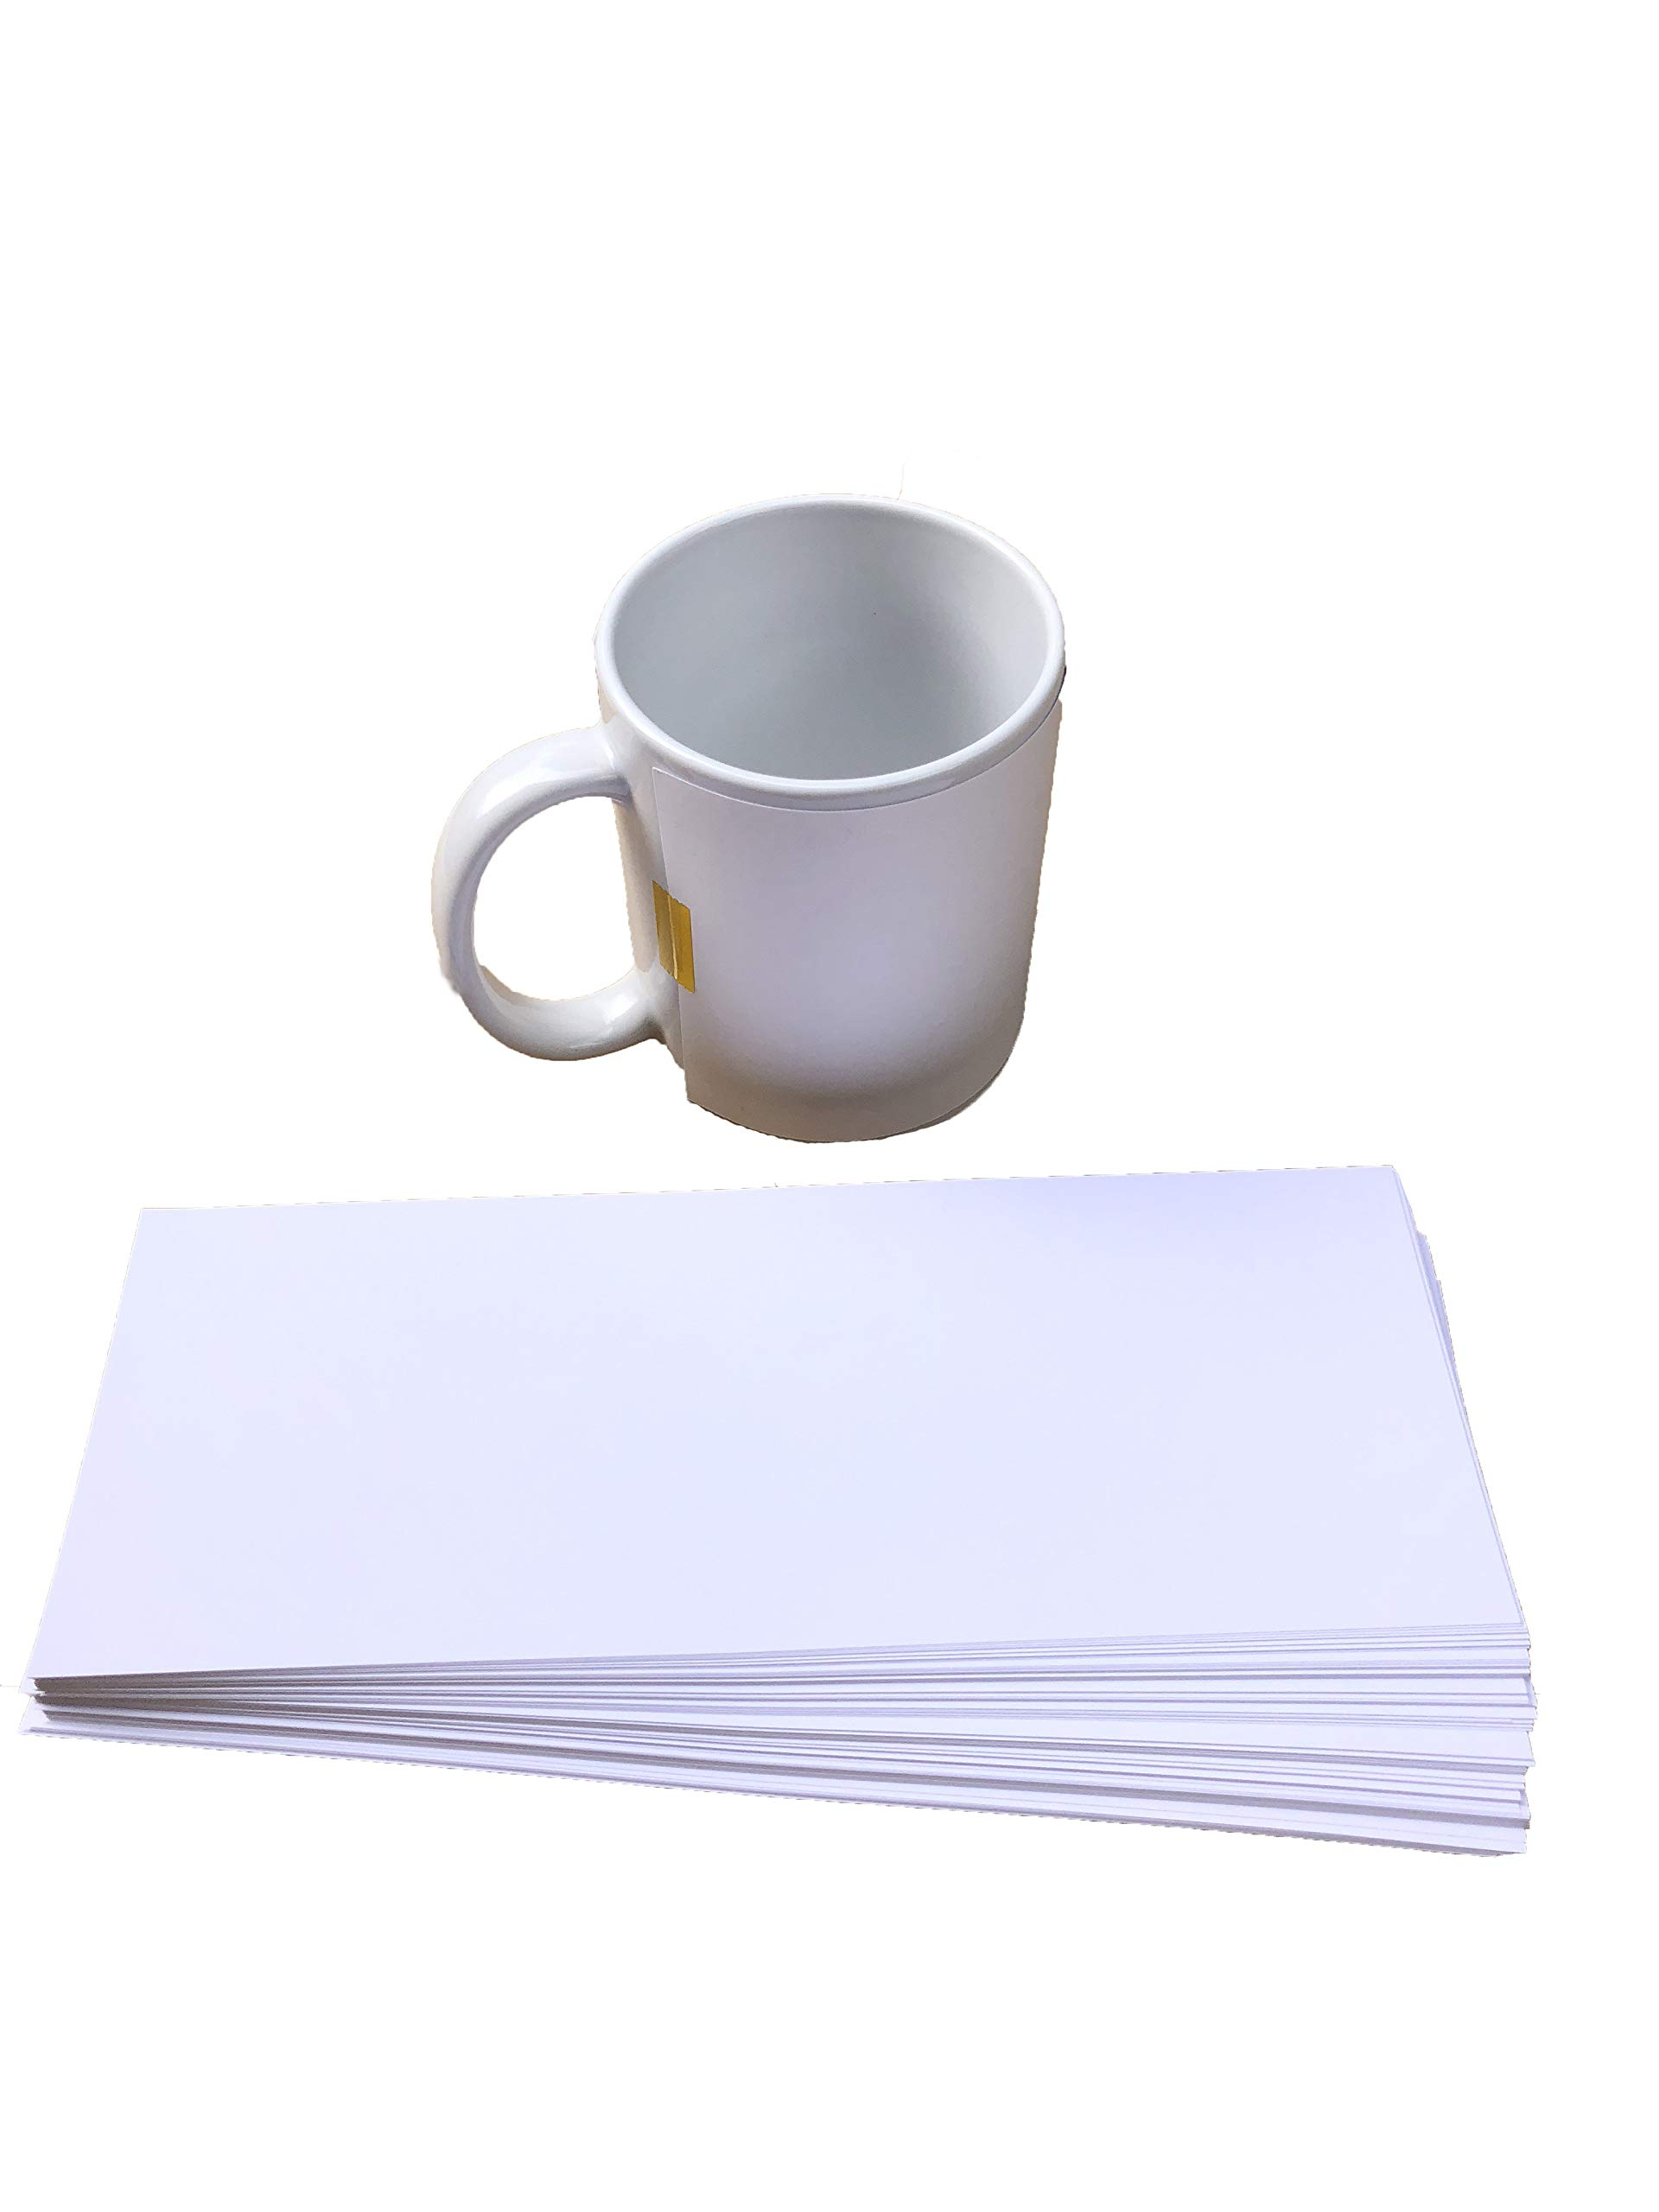 Alpha Print | Coffee Mug Sublimation Paper | 3.5'' x 9'' (11oz) | For Any Inkjet Printer with Sublimation Ink | 100 Sheets